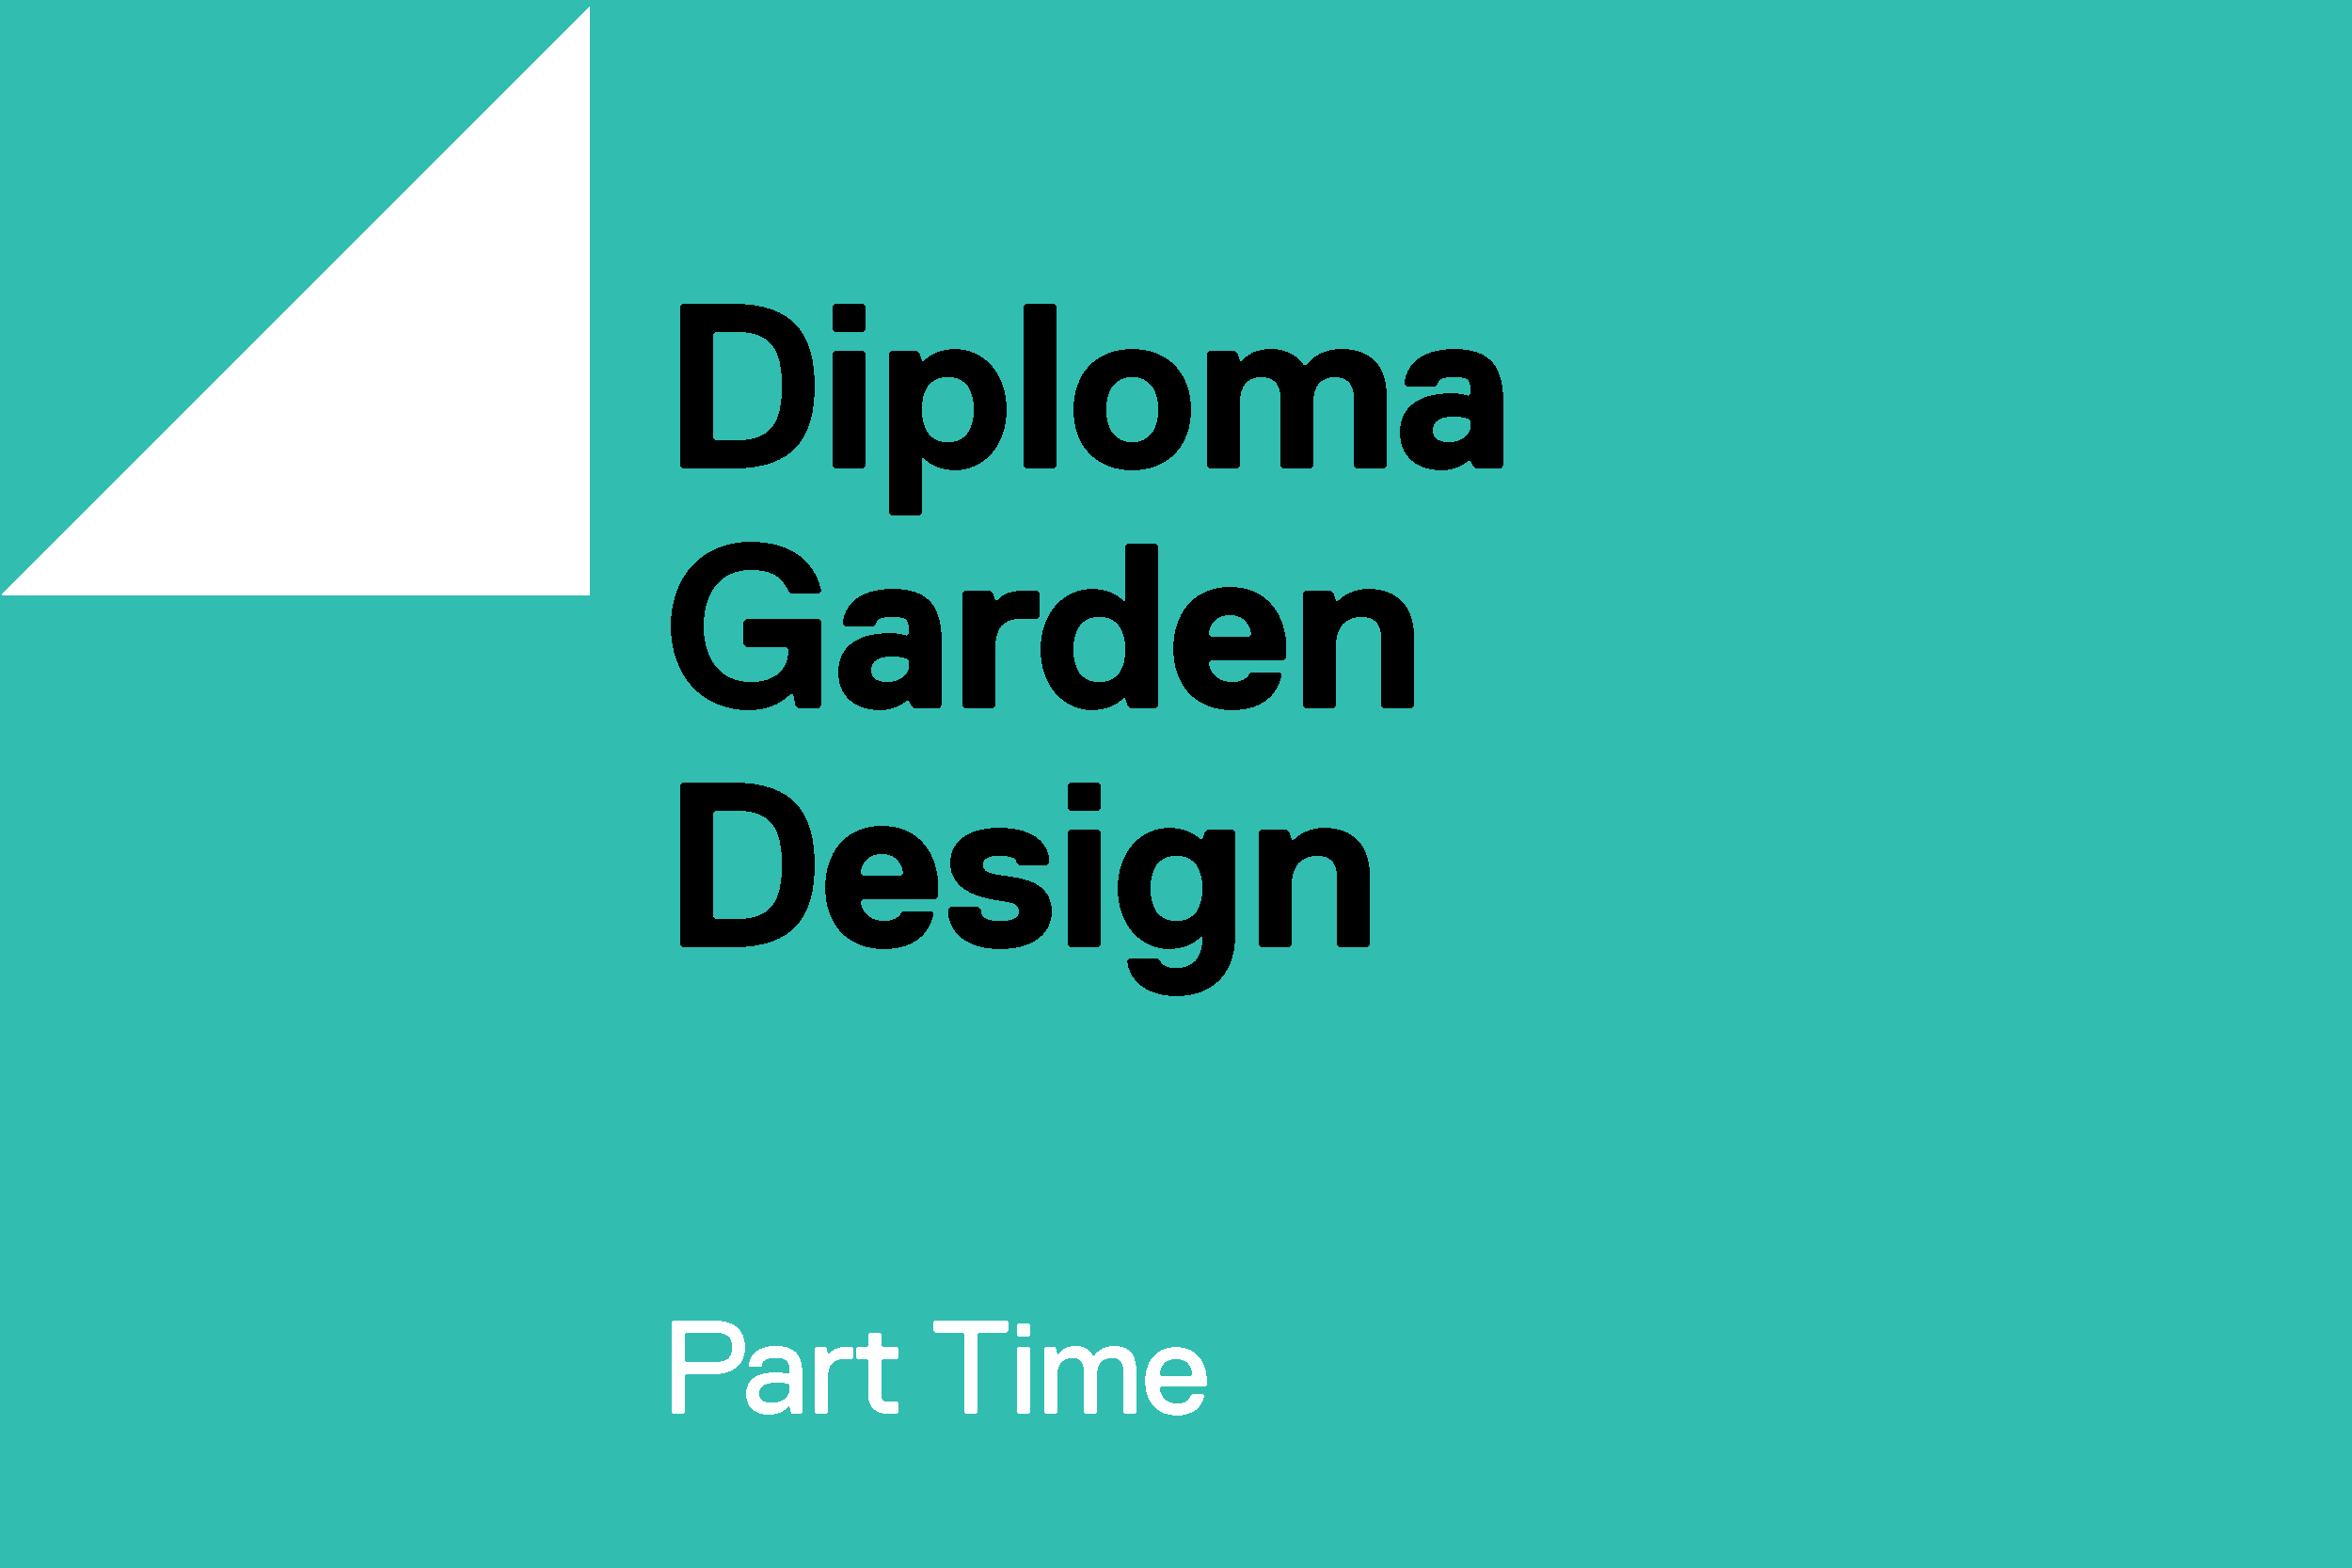 Diploma Part Time Garden Design